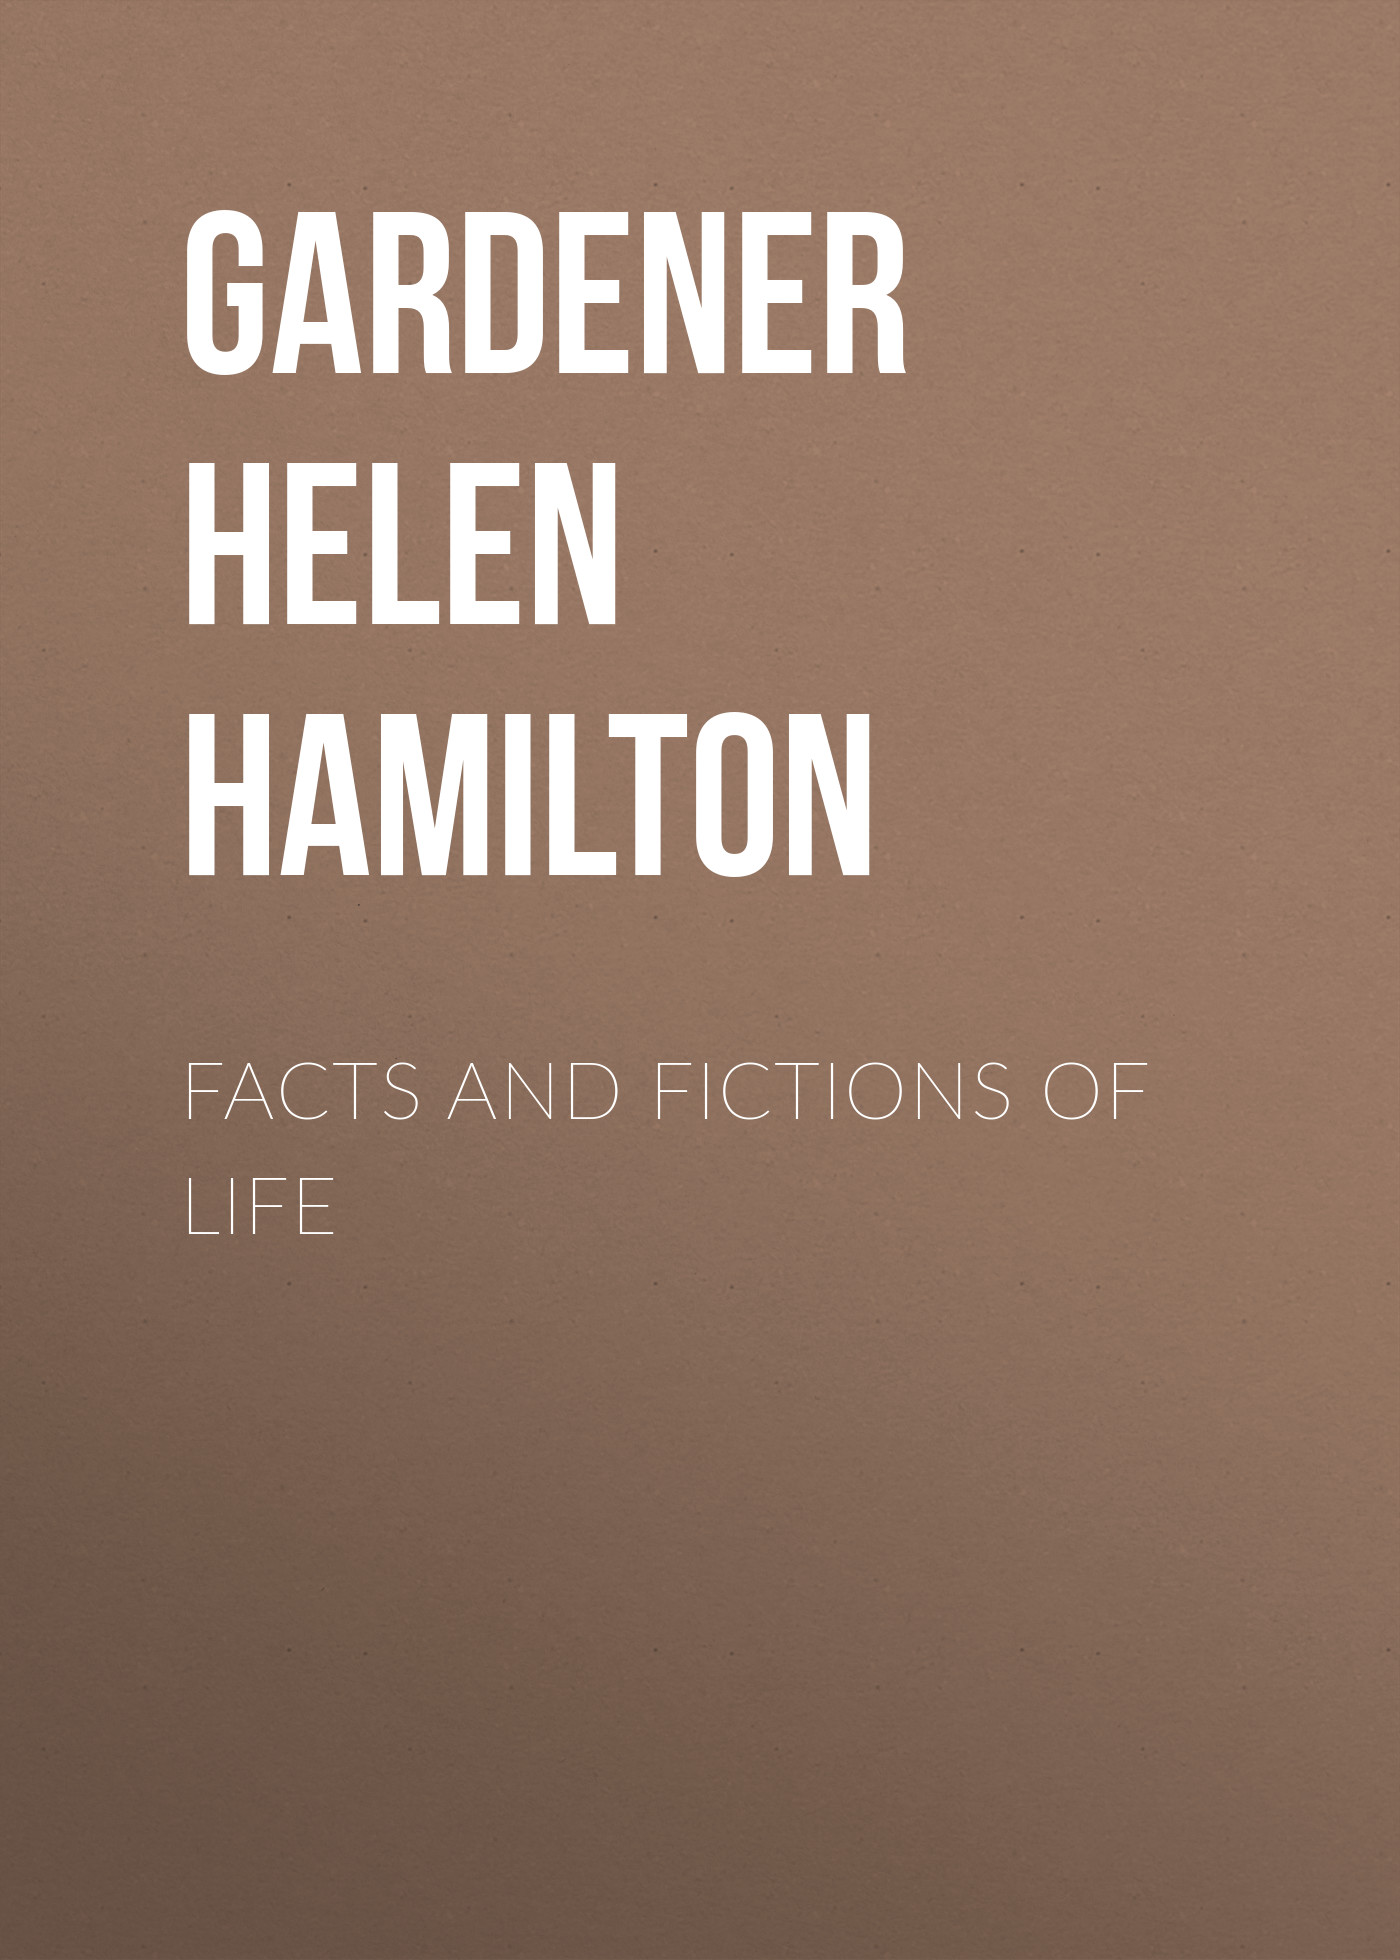 Gardener Helen Hamilton Facts and Fictions of Life helen chapel essentials of clinical immunology